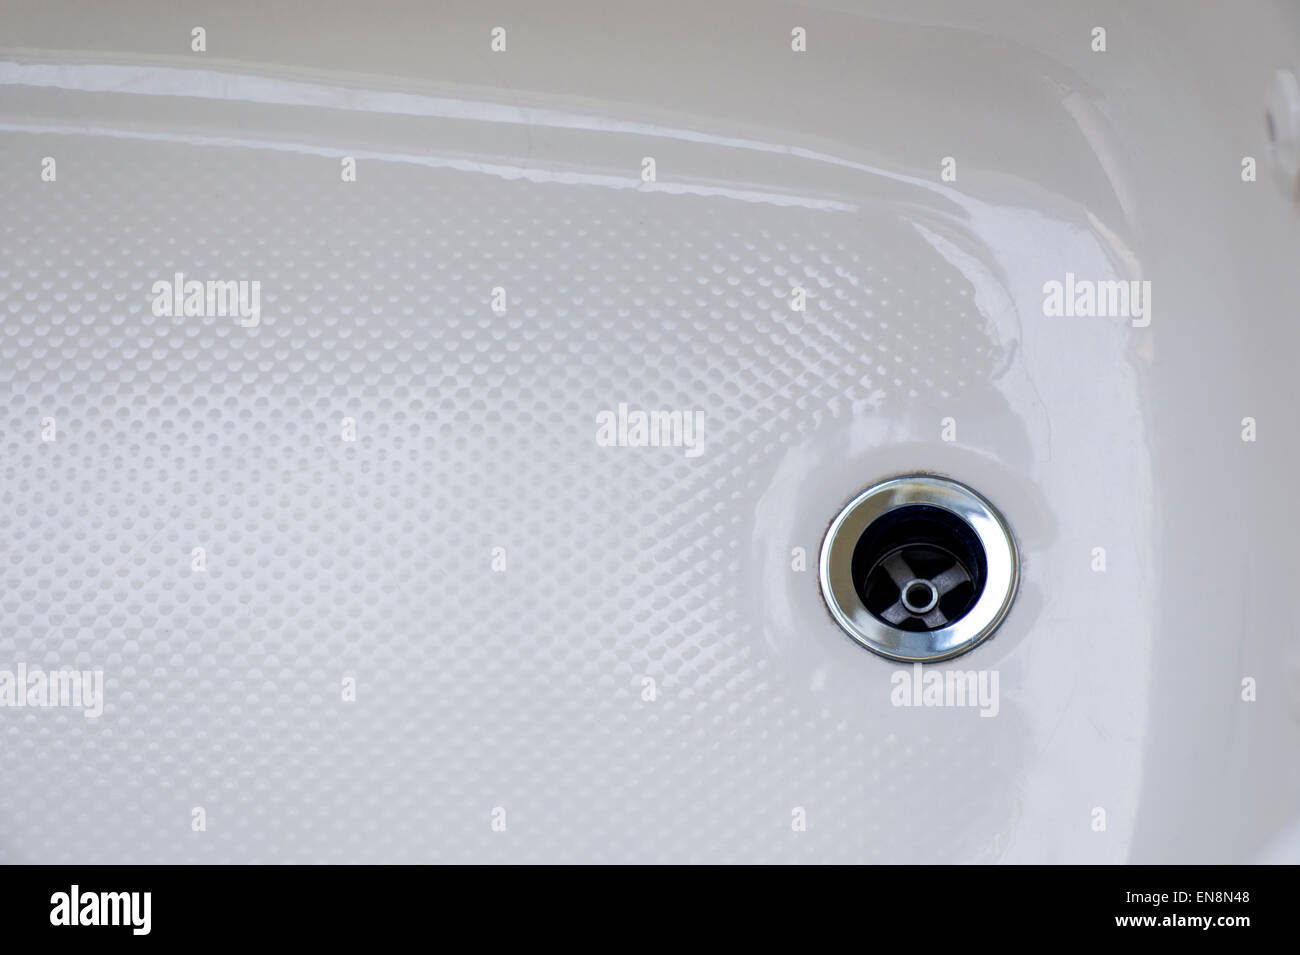 Close up of the drain in a ceramic bath tub - Stock Image